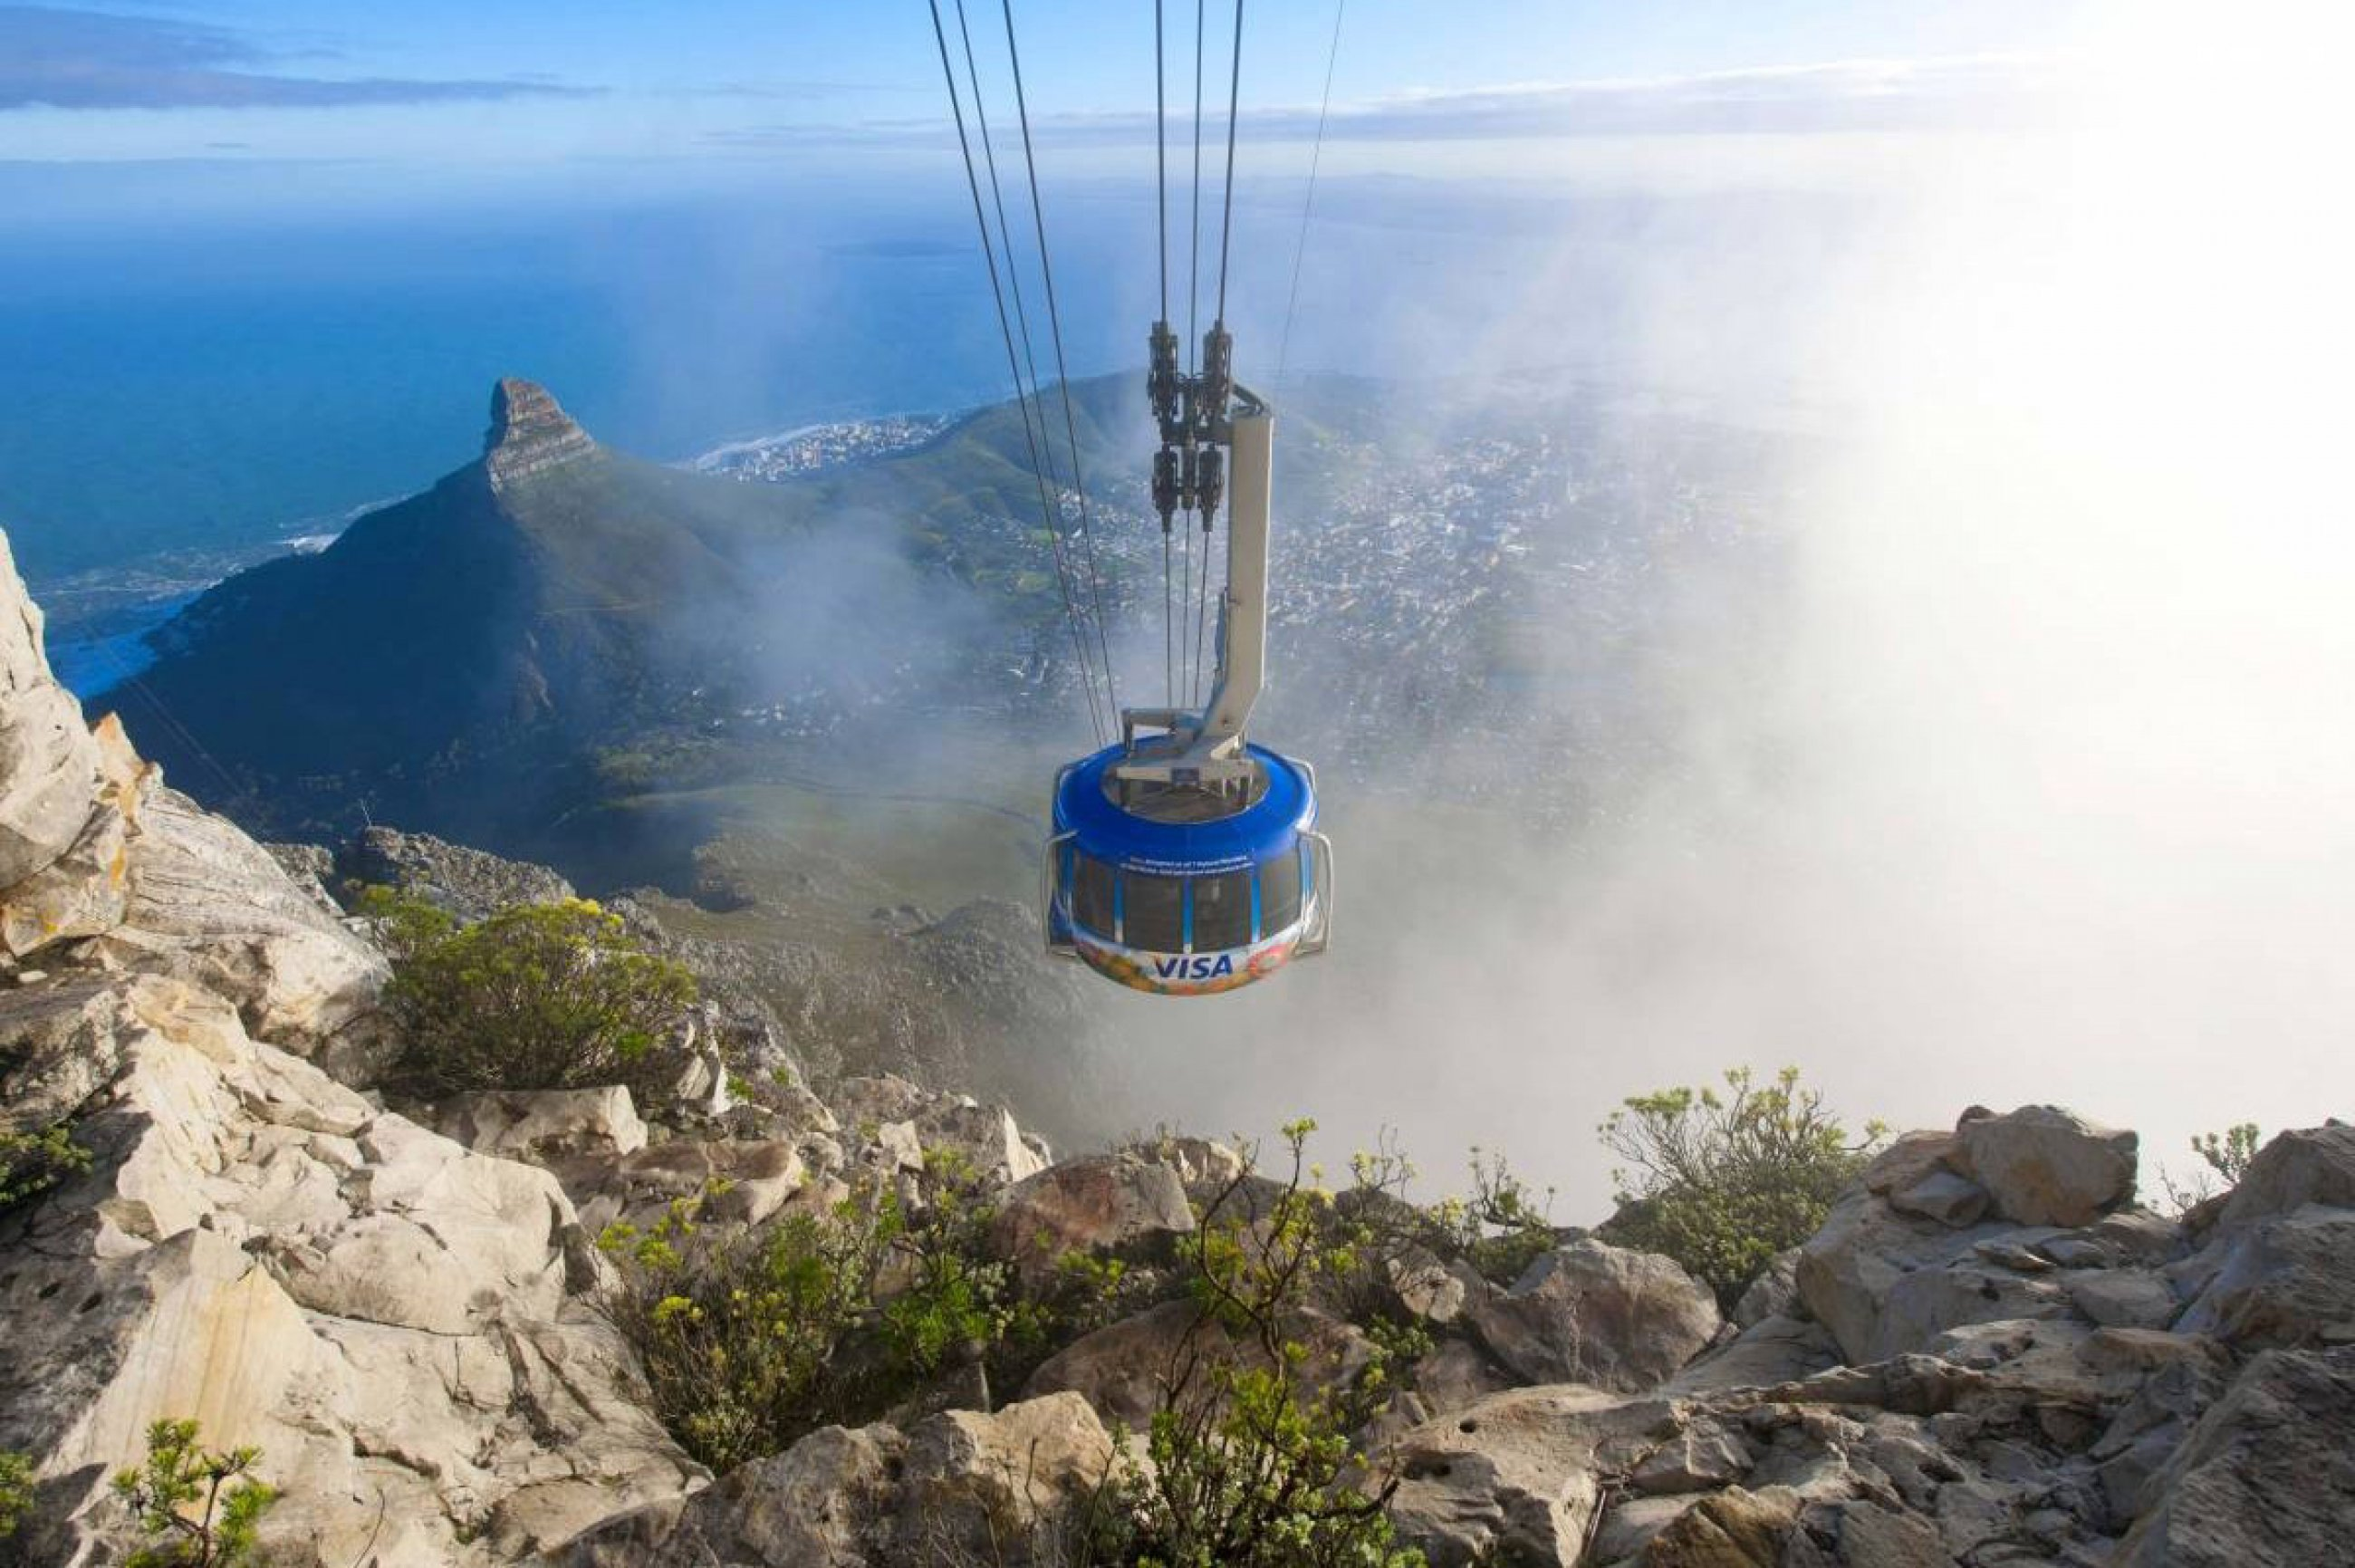 https://bubo.sk/uploads/galleries/7504/cable-car-in-clouds-1200-800-70-s.jpg